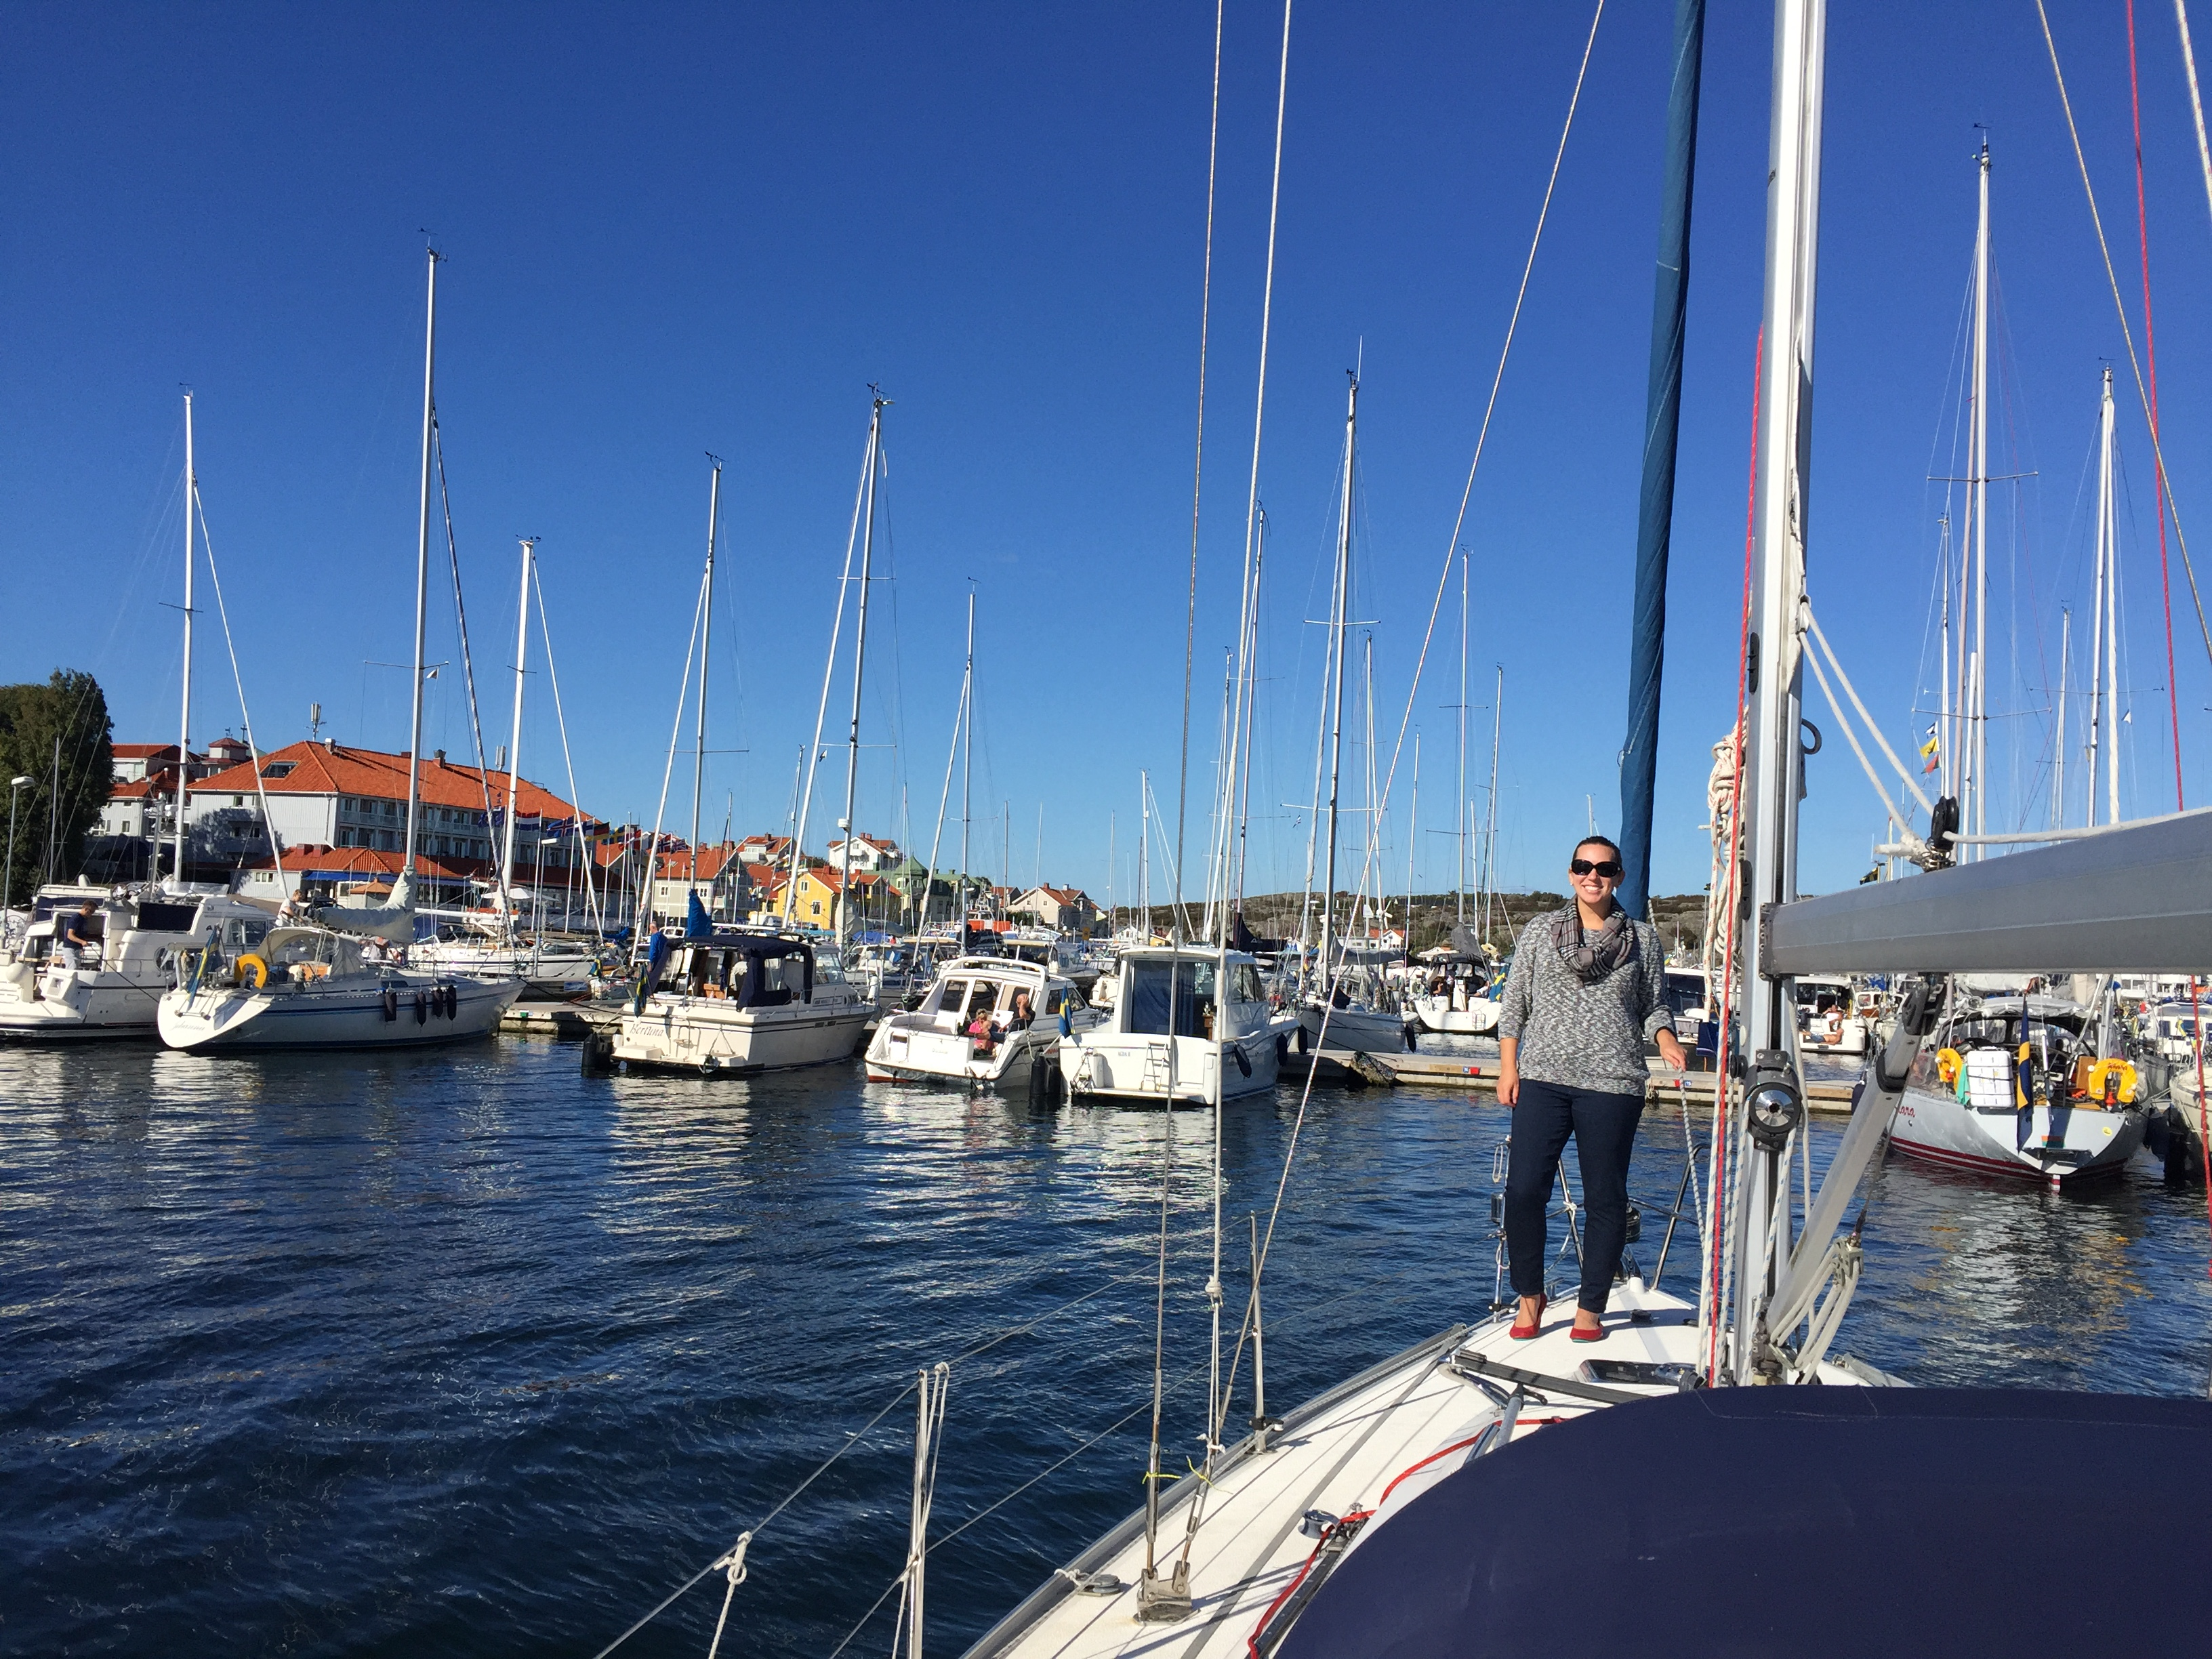 Sailboat on the island of Marstrand, Sweden